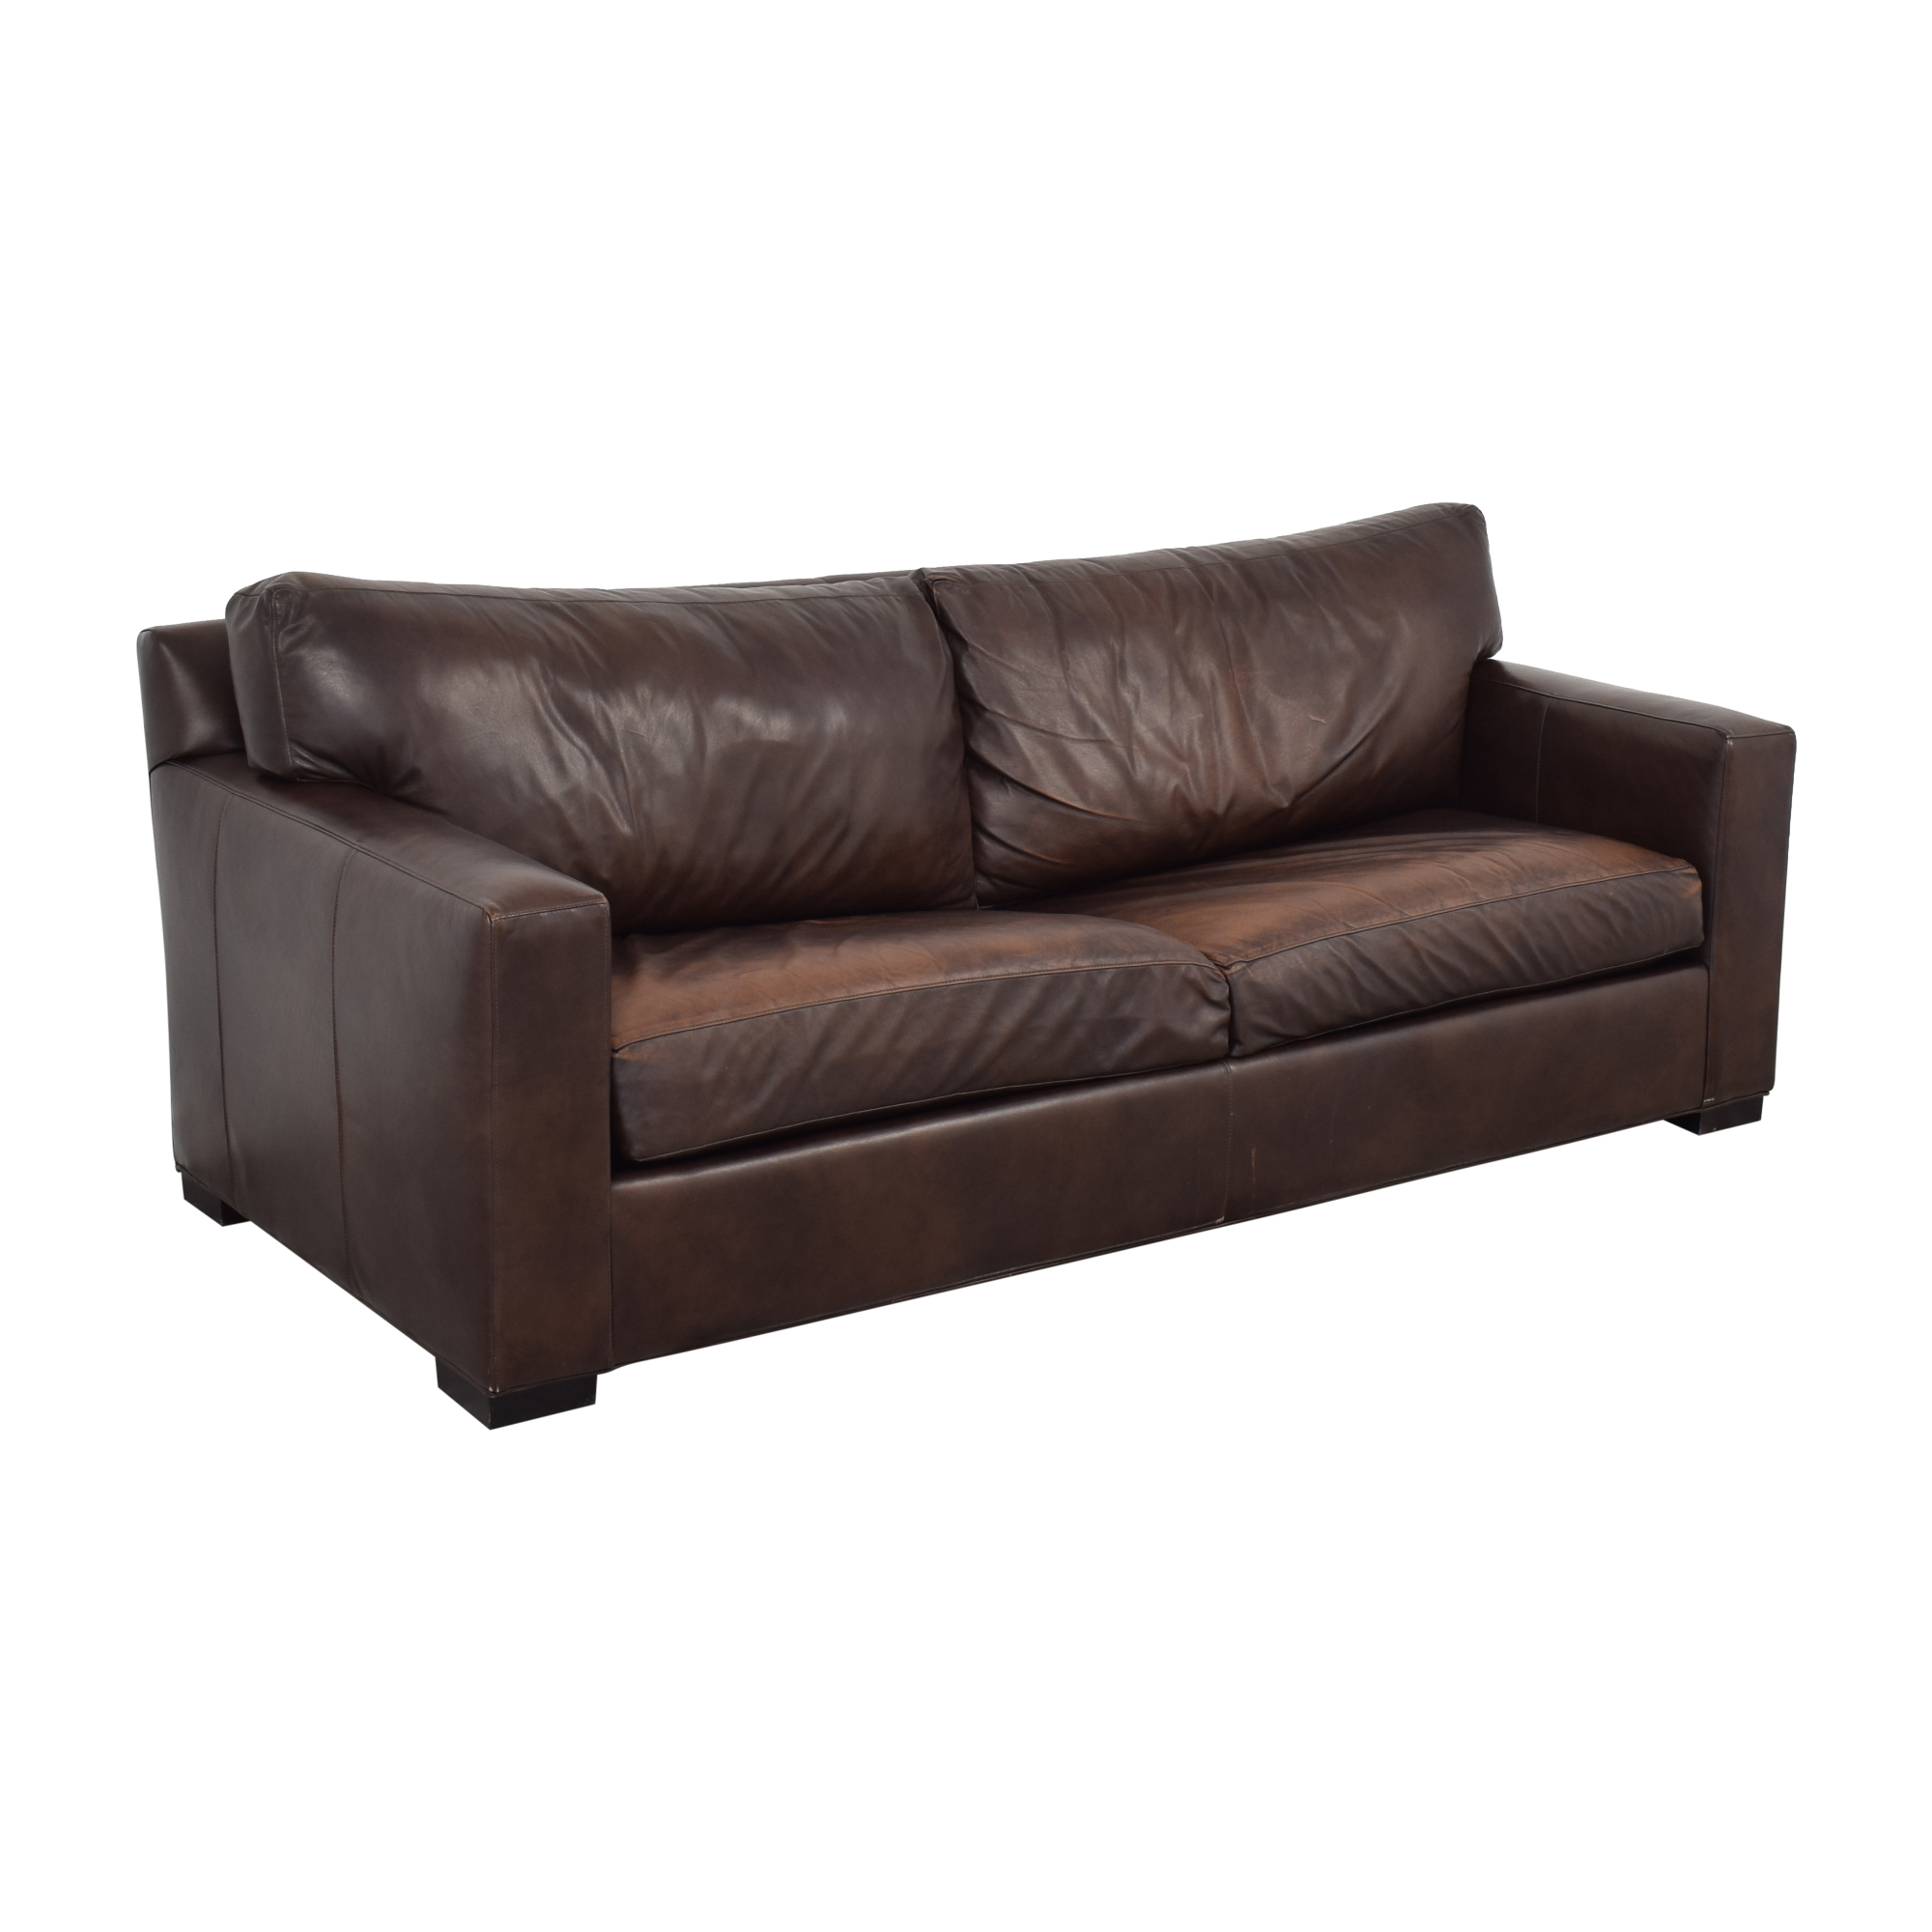 Crate & Barrel Crate & Barrel Axis II Leather Two Seat Queen Sleeper Sofa used